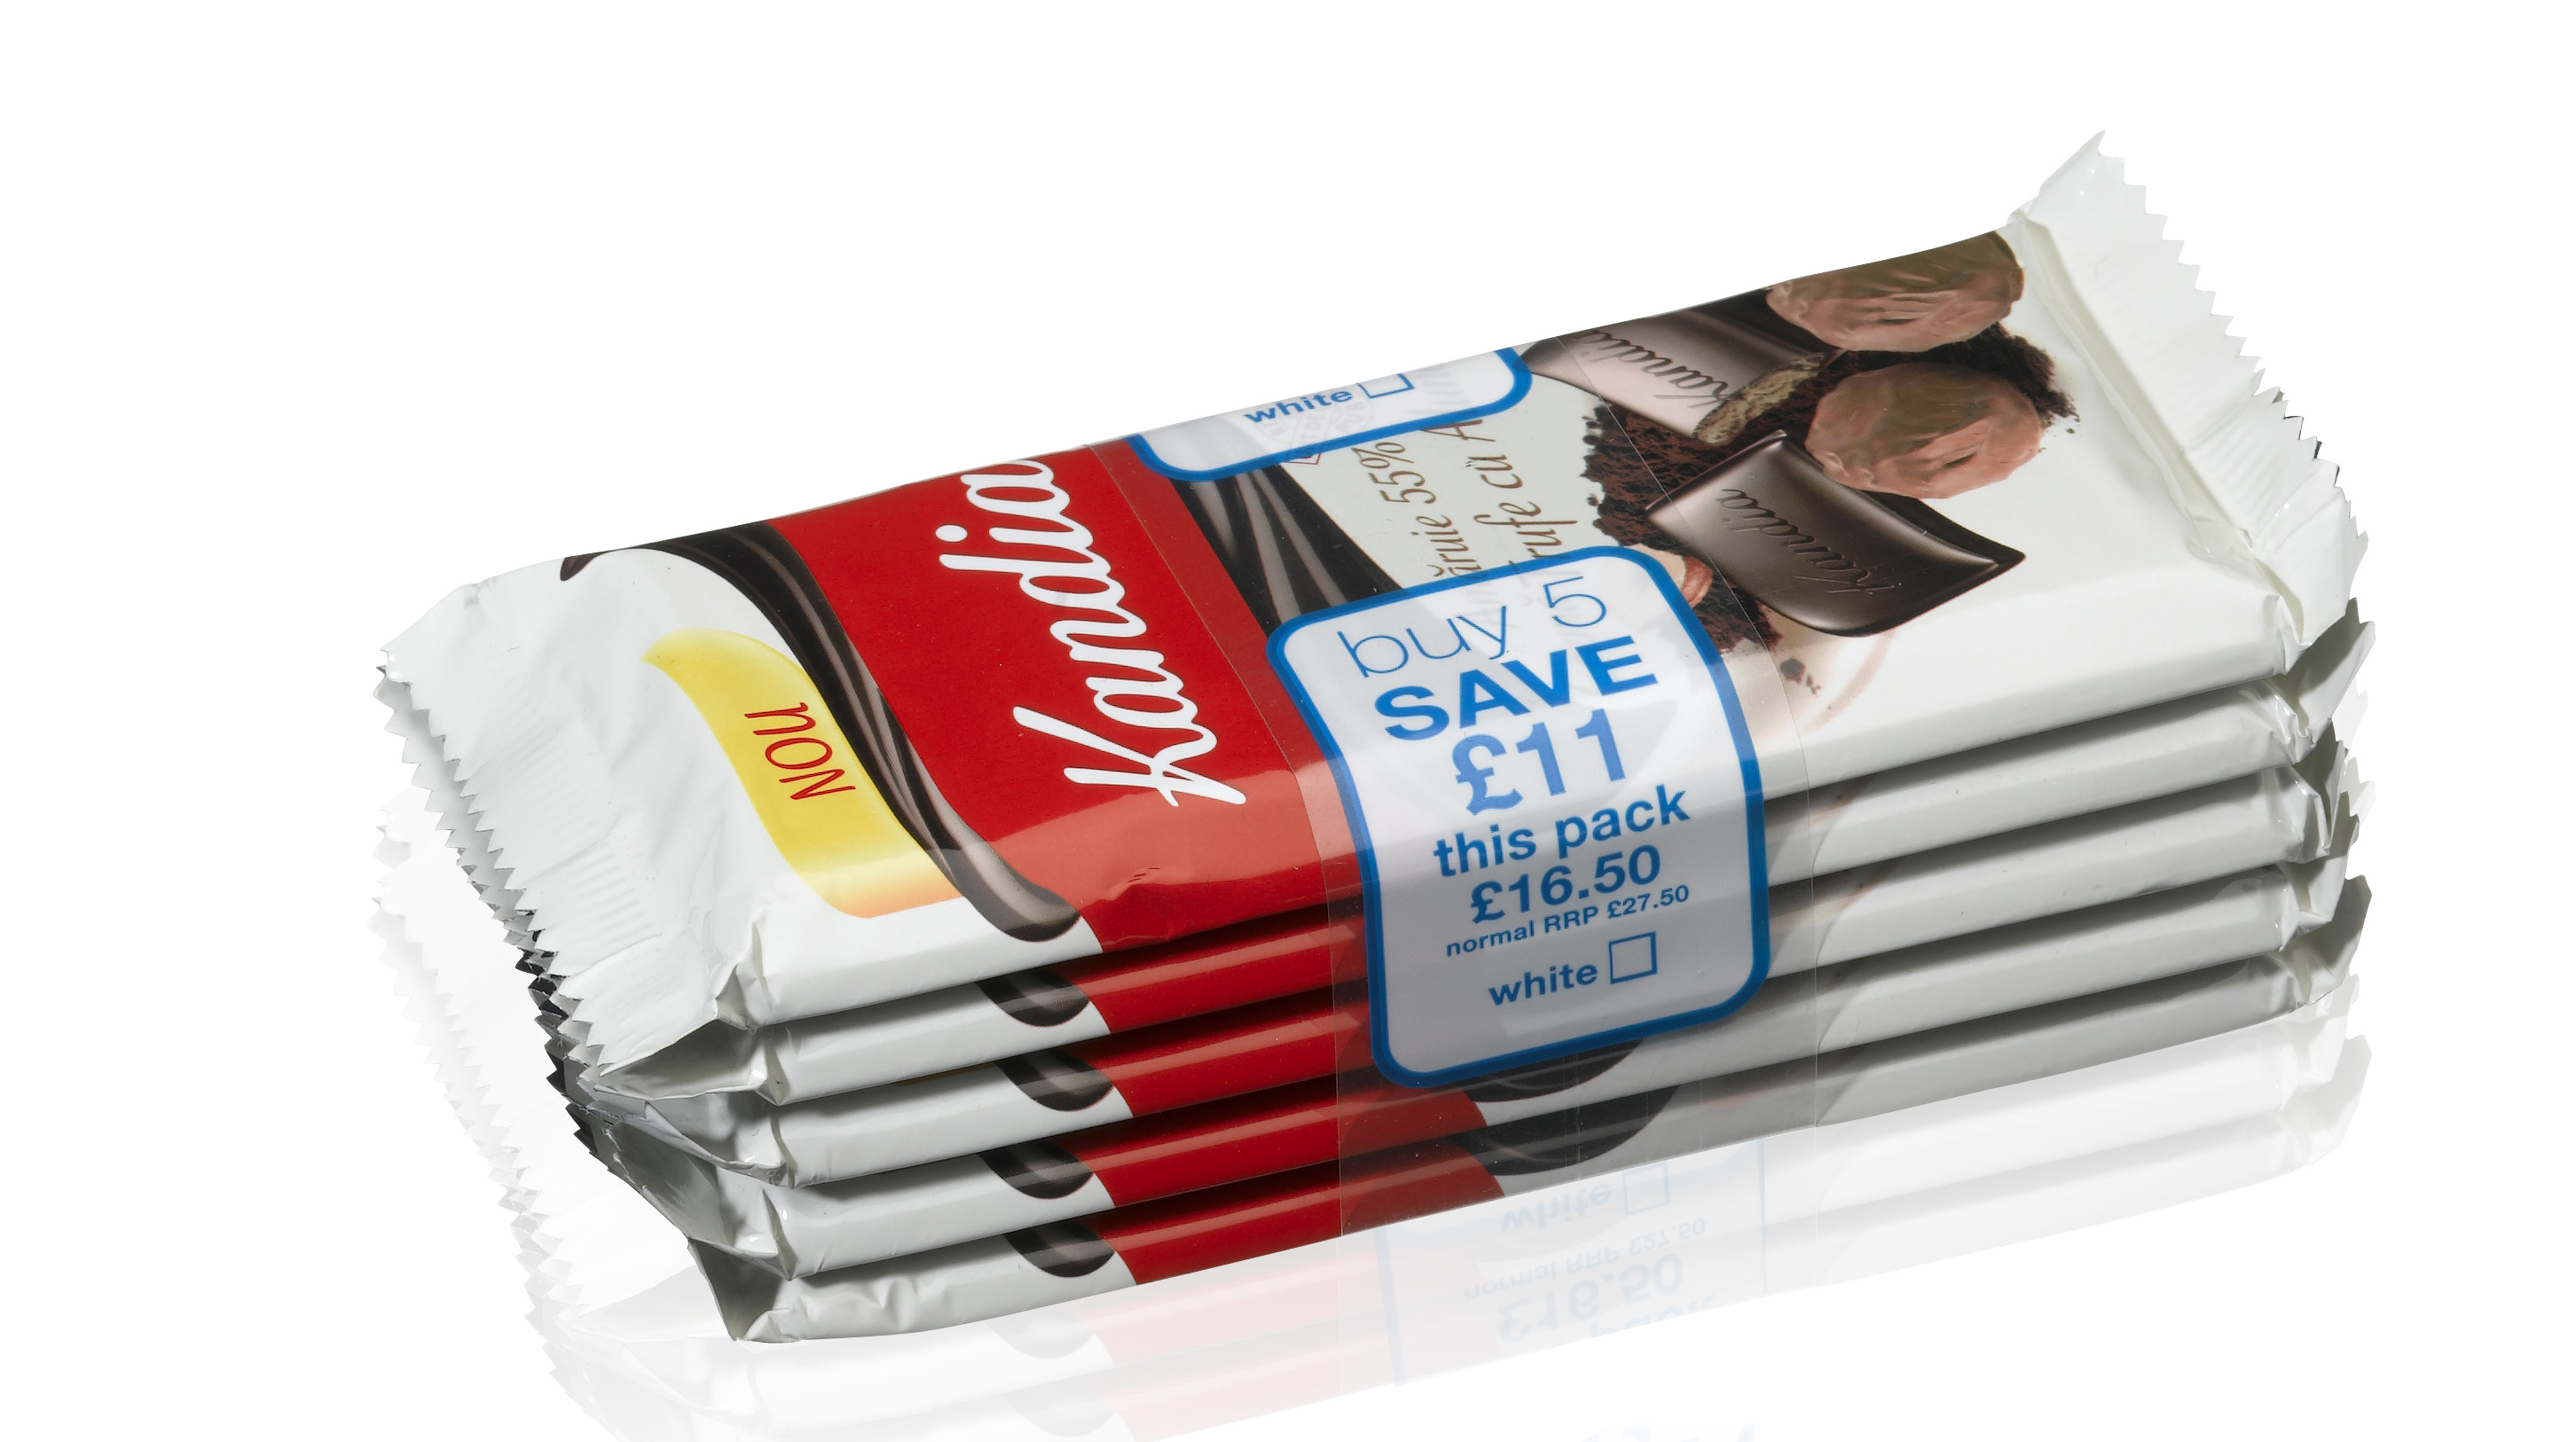 An example of promotional package bundling using banding systems